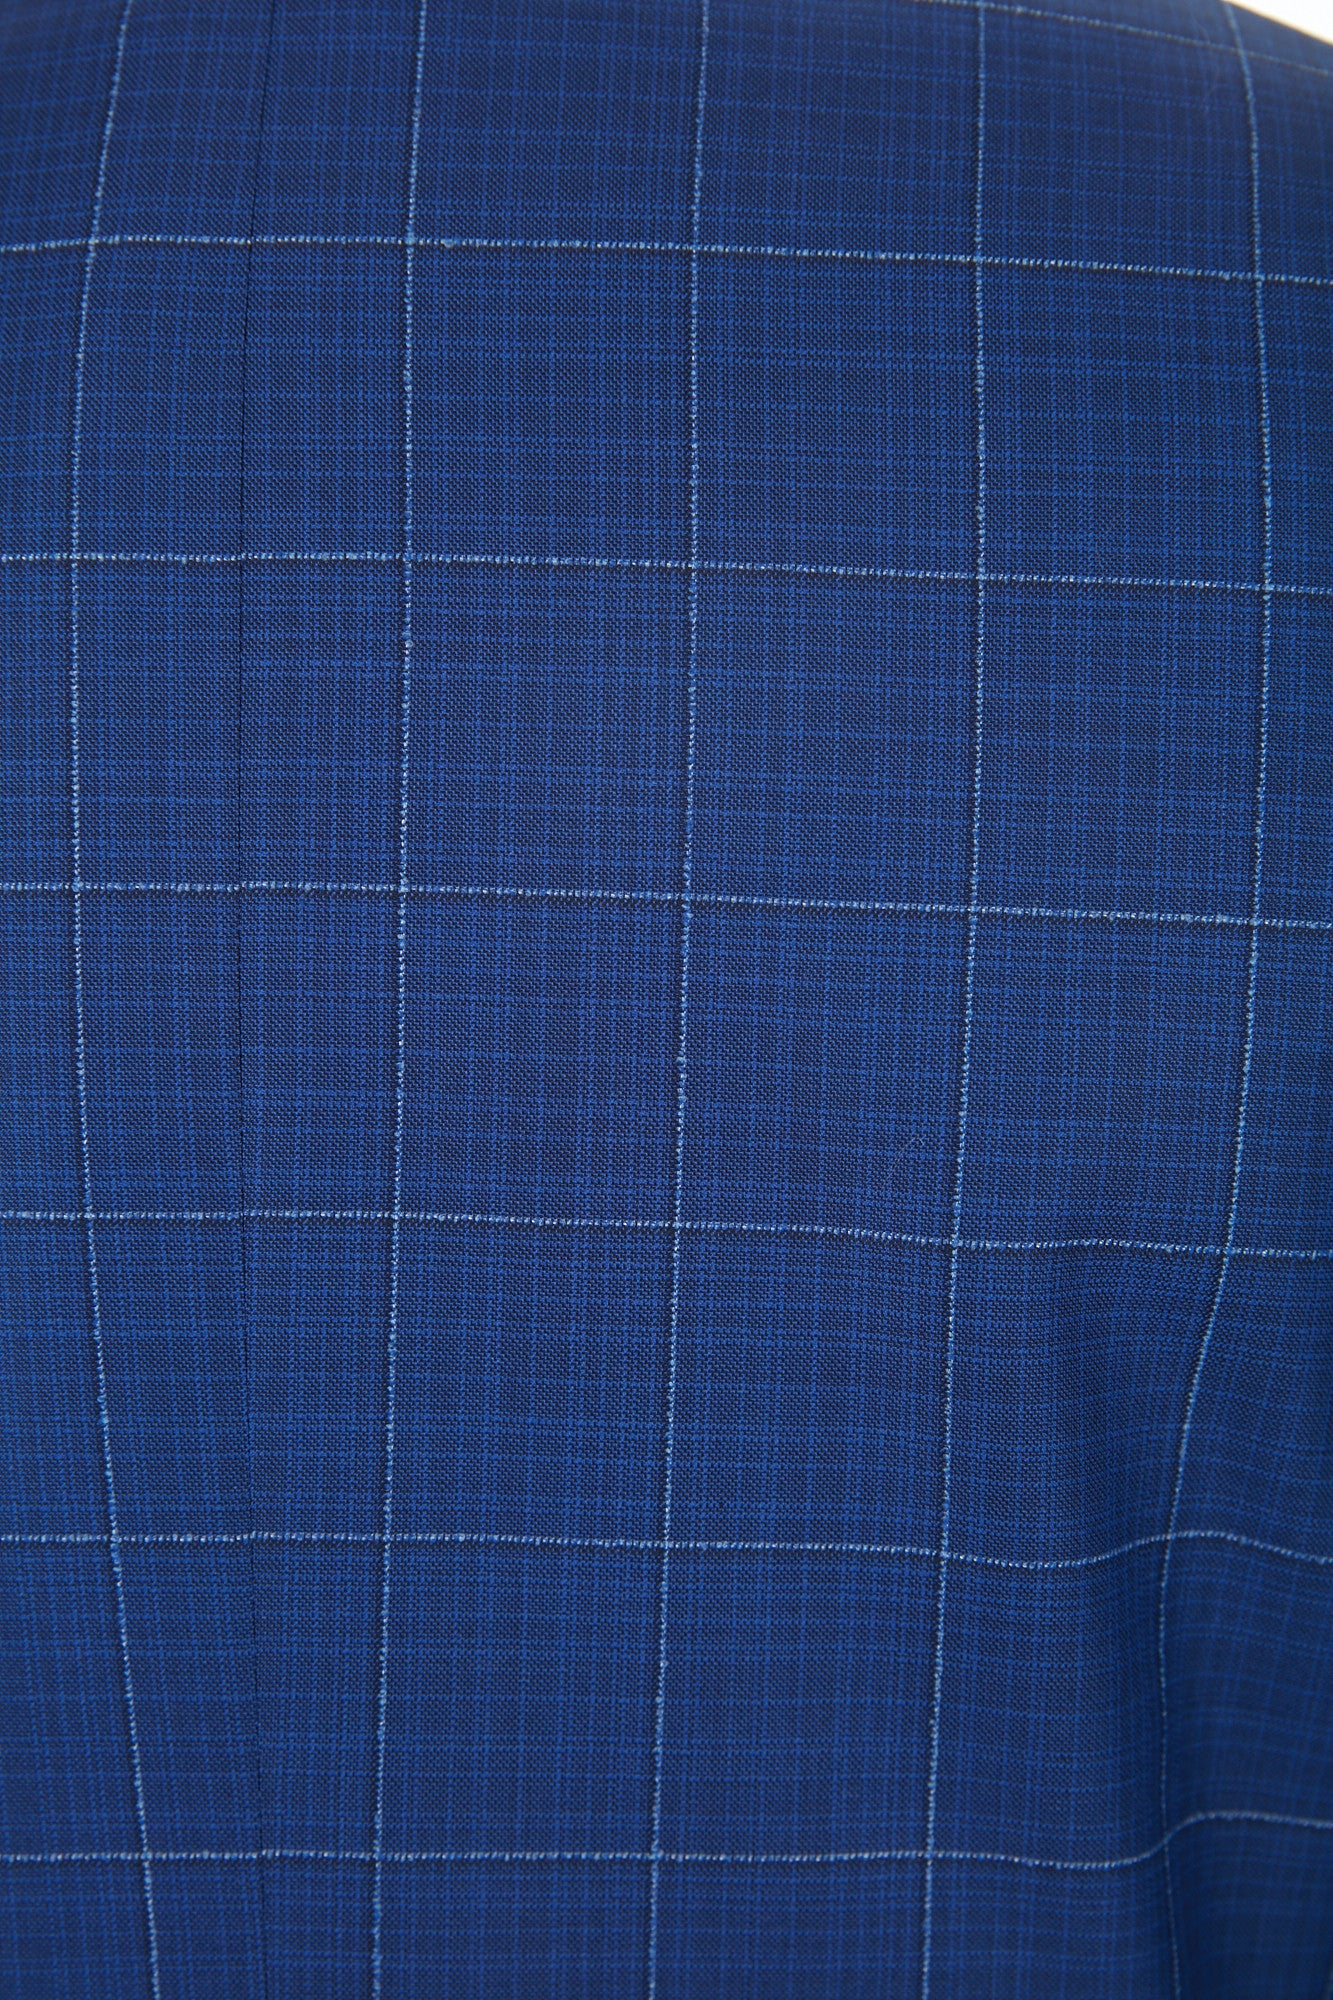 Canali Blue Windowpane Suit - Suits - Canali - LALONDE's